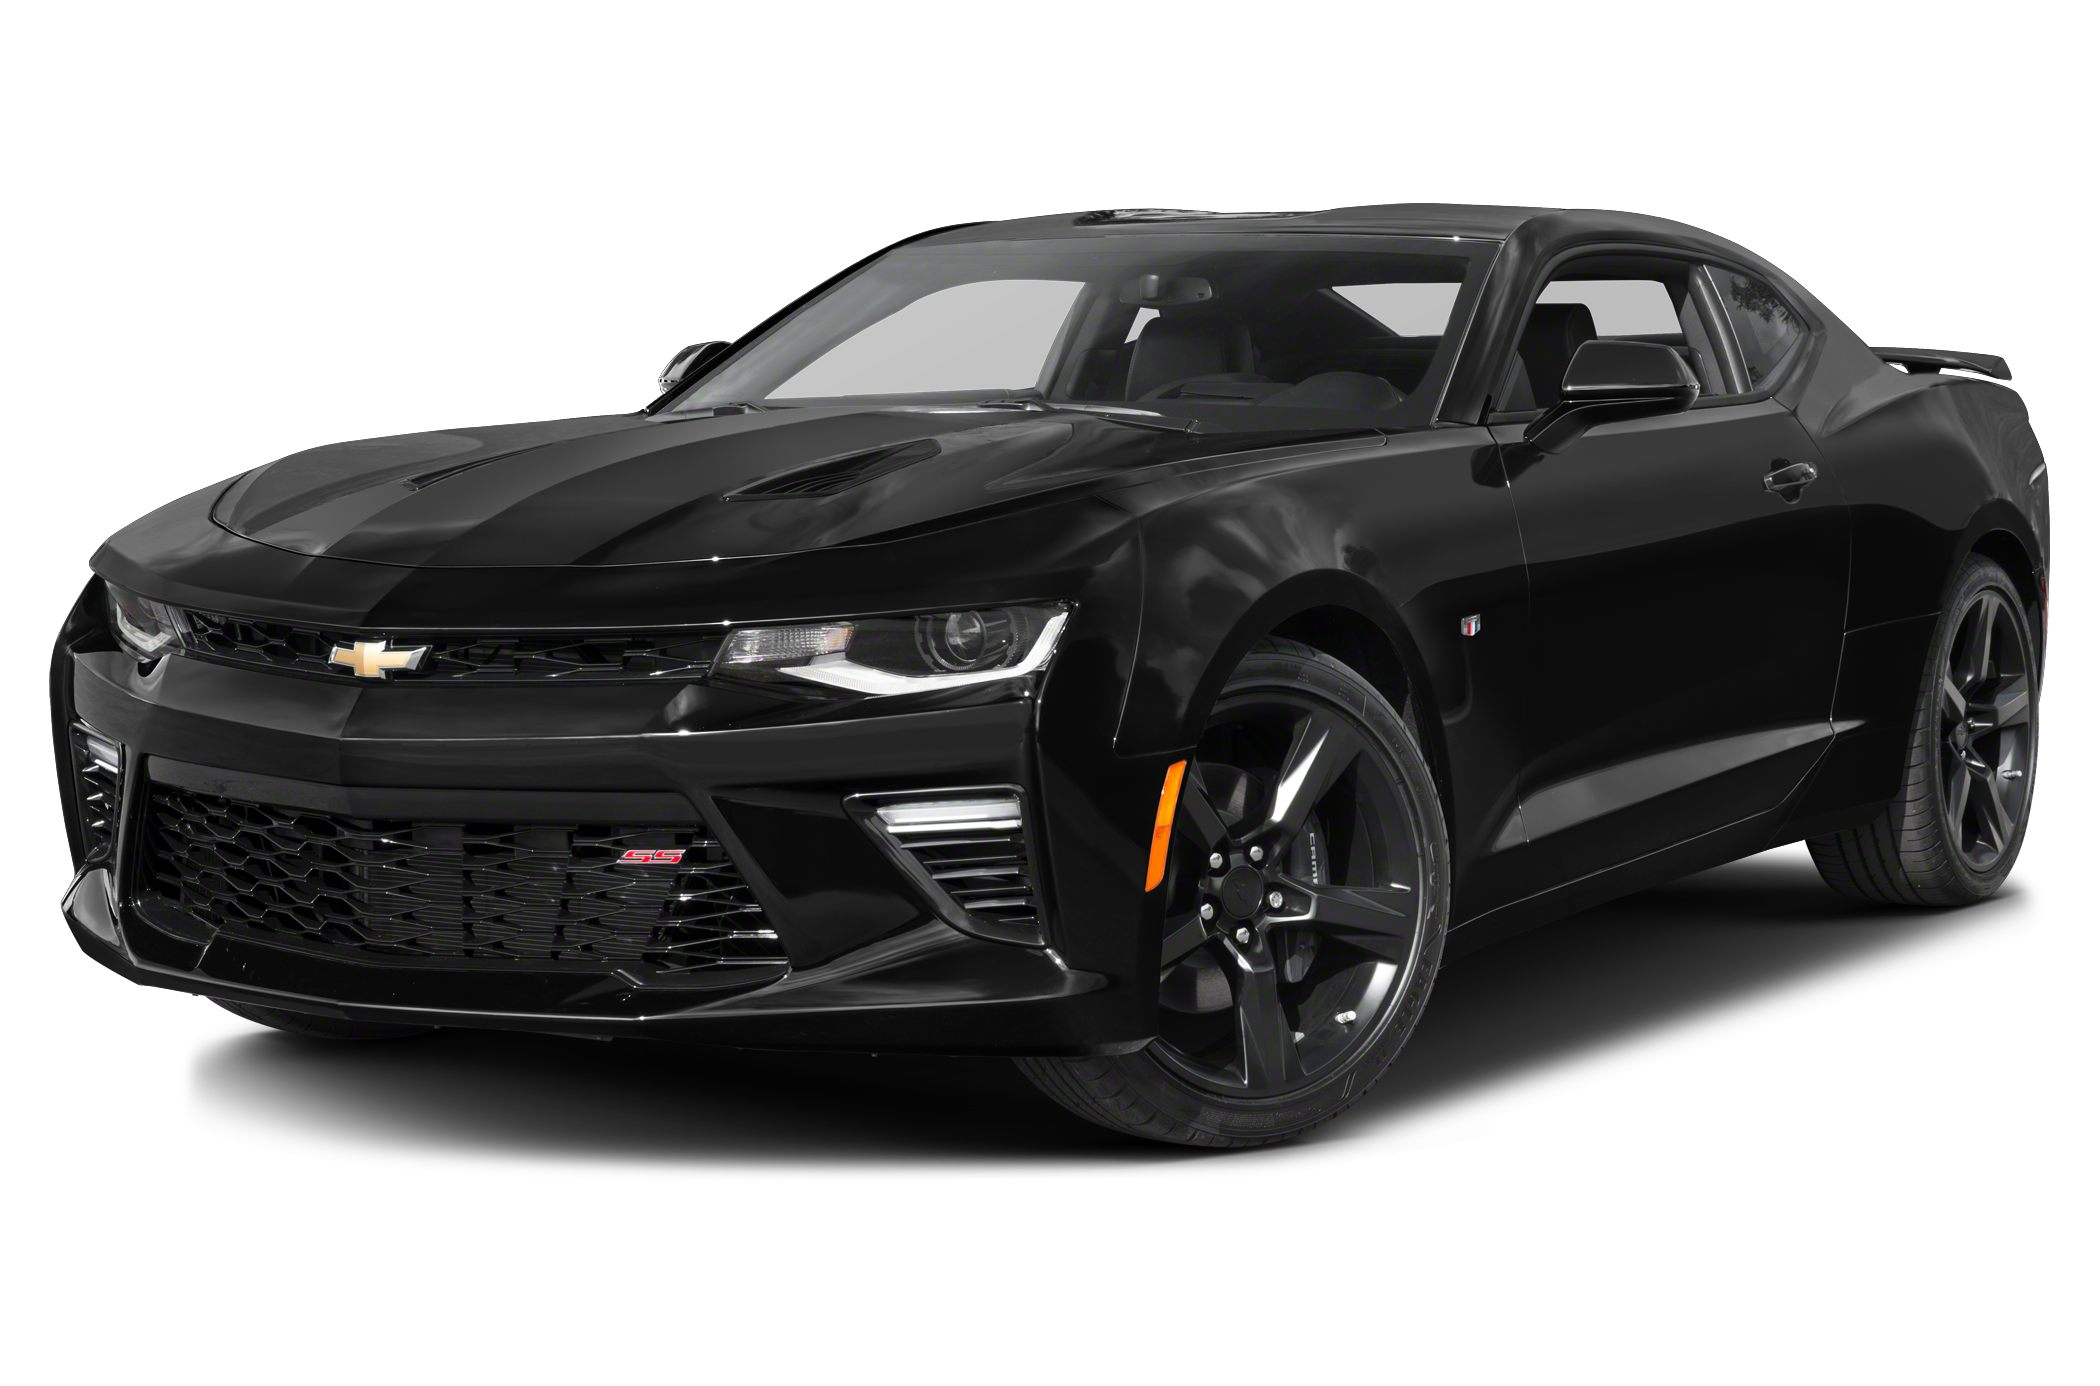 2017 chevrolet camaro ss w 1ss cars and vehicles west union sc. Black Bedroom Furniture Sets. Home Design Ideas